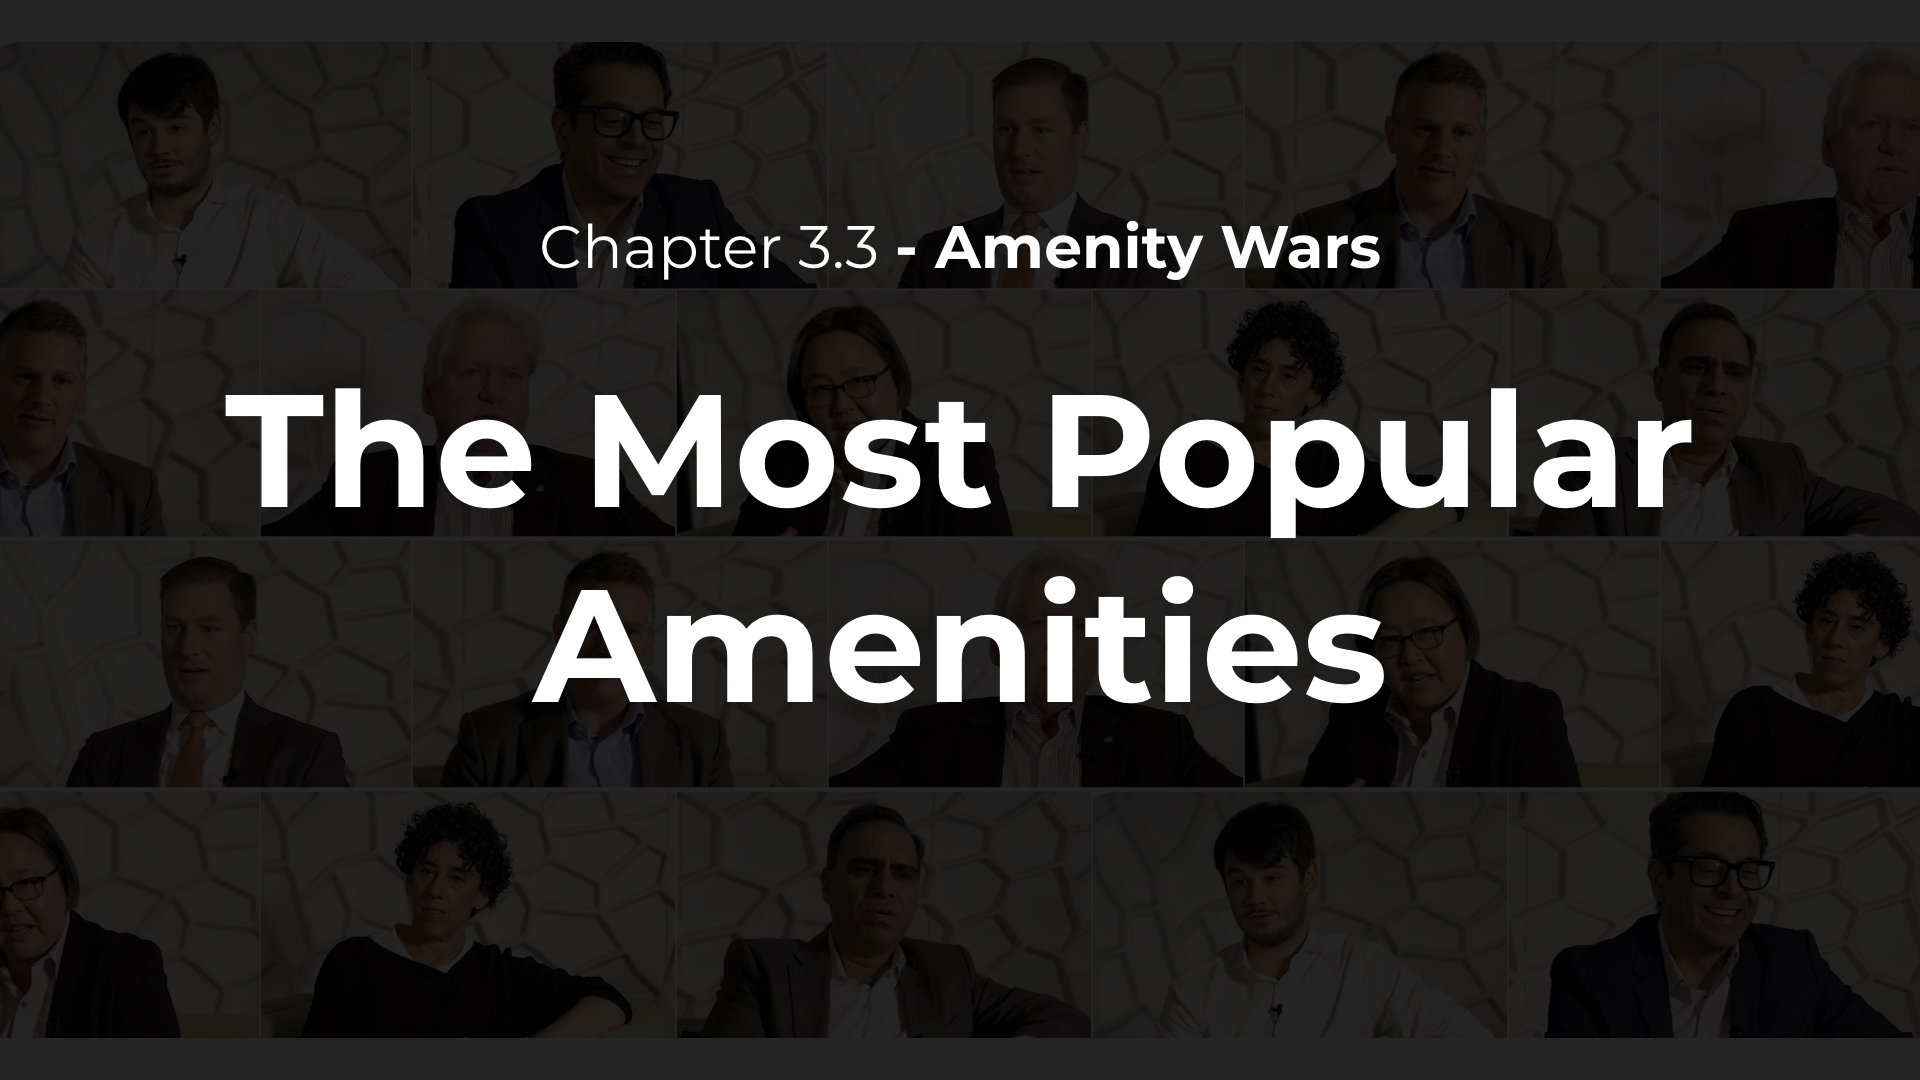 3.3 - The Most Popular Amenities